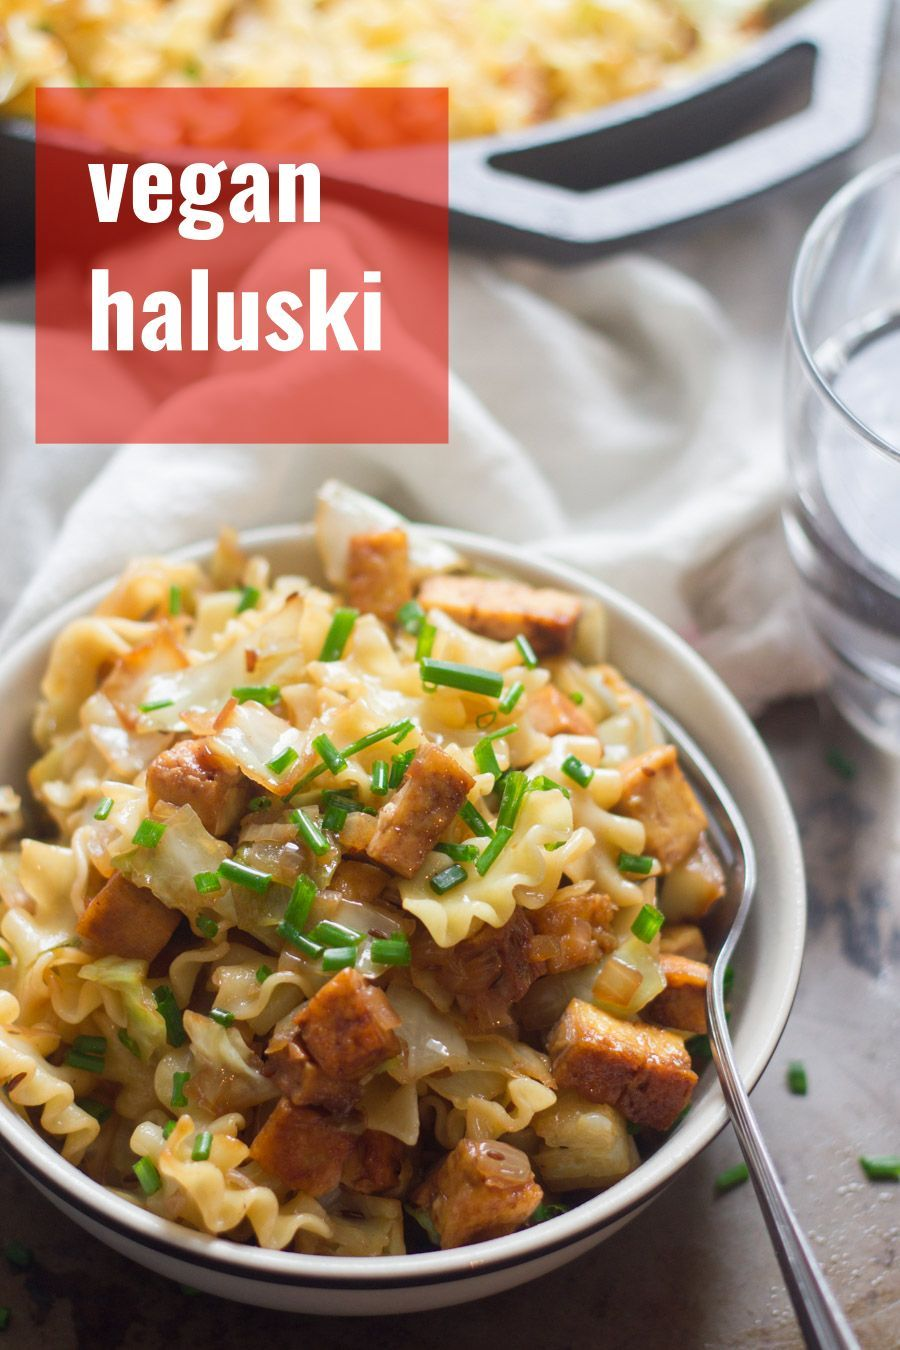 Traditional Haluski Goes Vegan Cabbage And Onions Are Stir